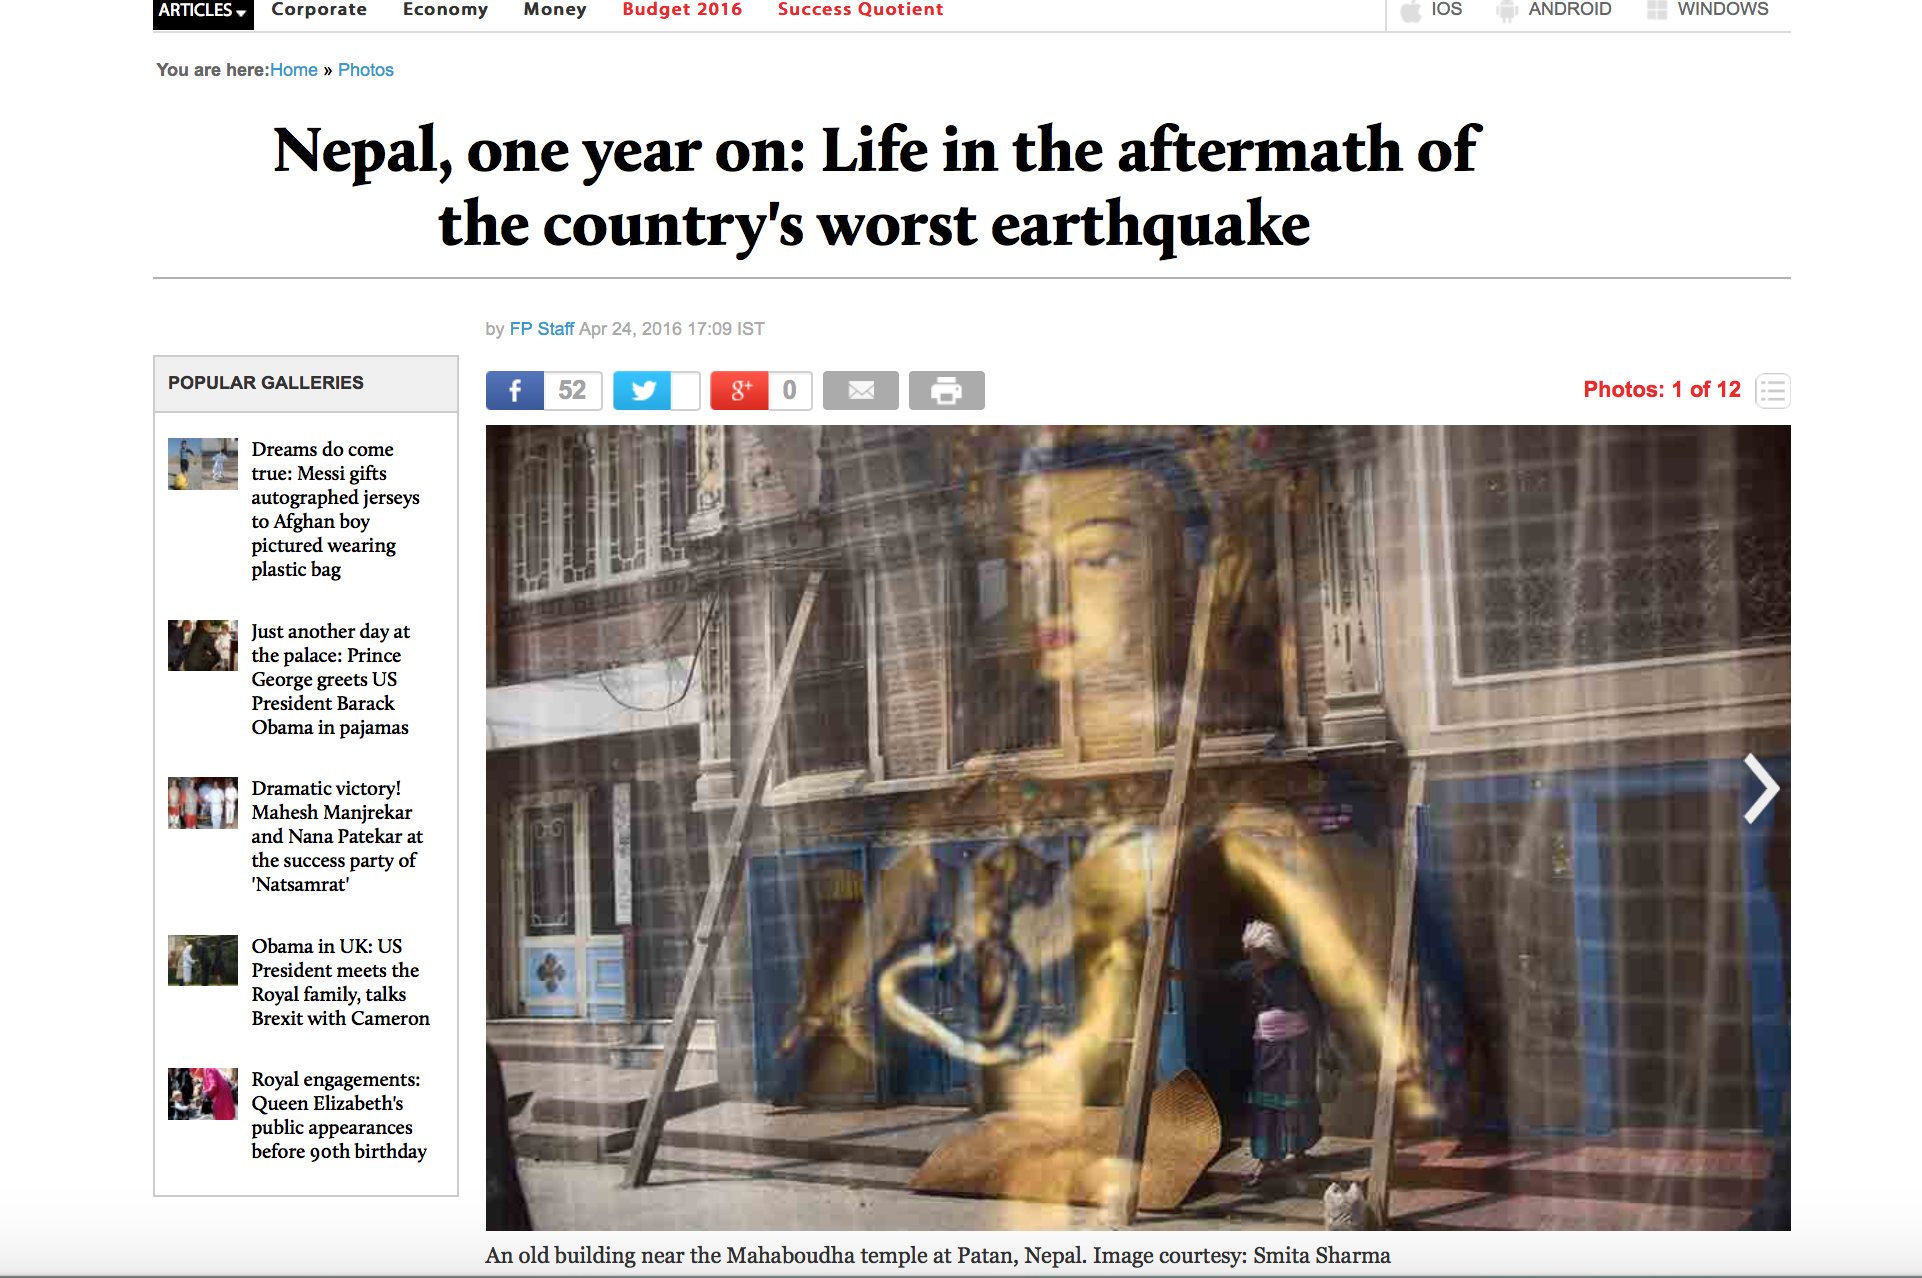 https://www.firstpost.com/world/nepal-one-year-on-life-in-the-aftermath-of-the-countrys-worst-earthquake-2746266.html